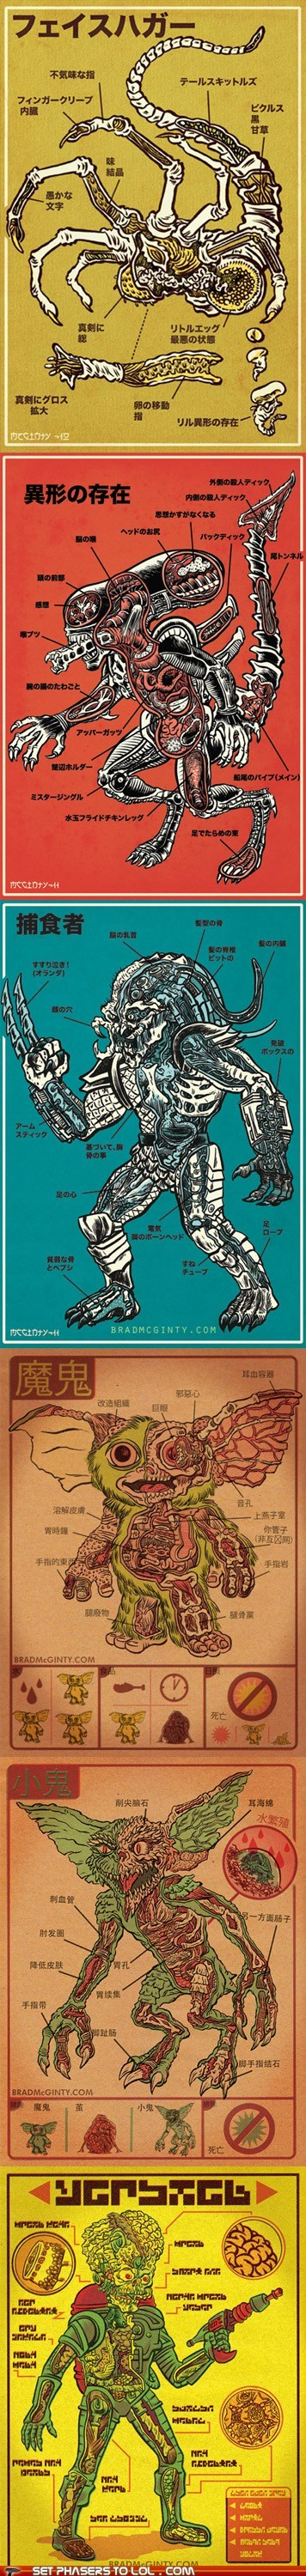 Aliens anatomy face huggers Fan Art gremlins mars attacks martians mogwai Predator xenomorphs - 6585200640